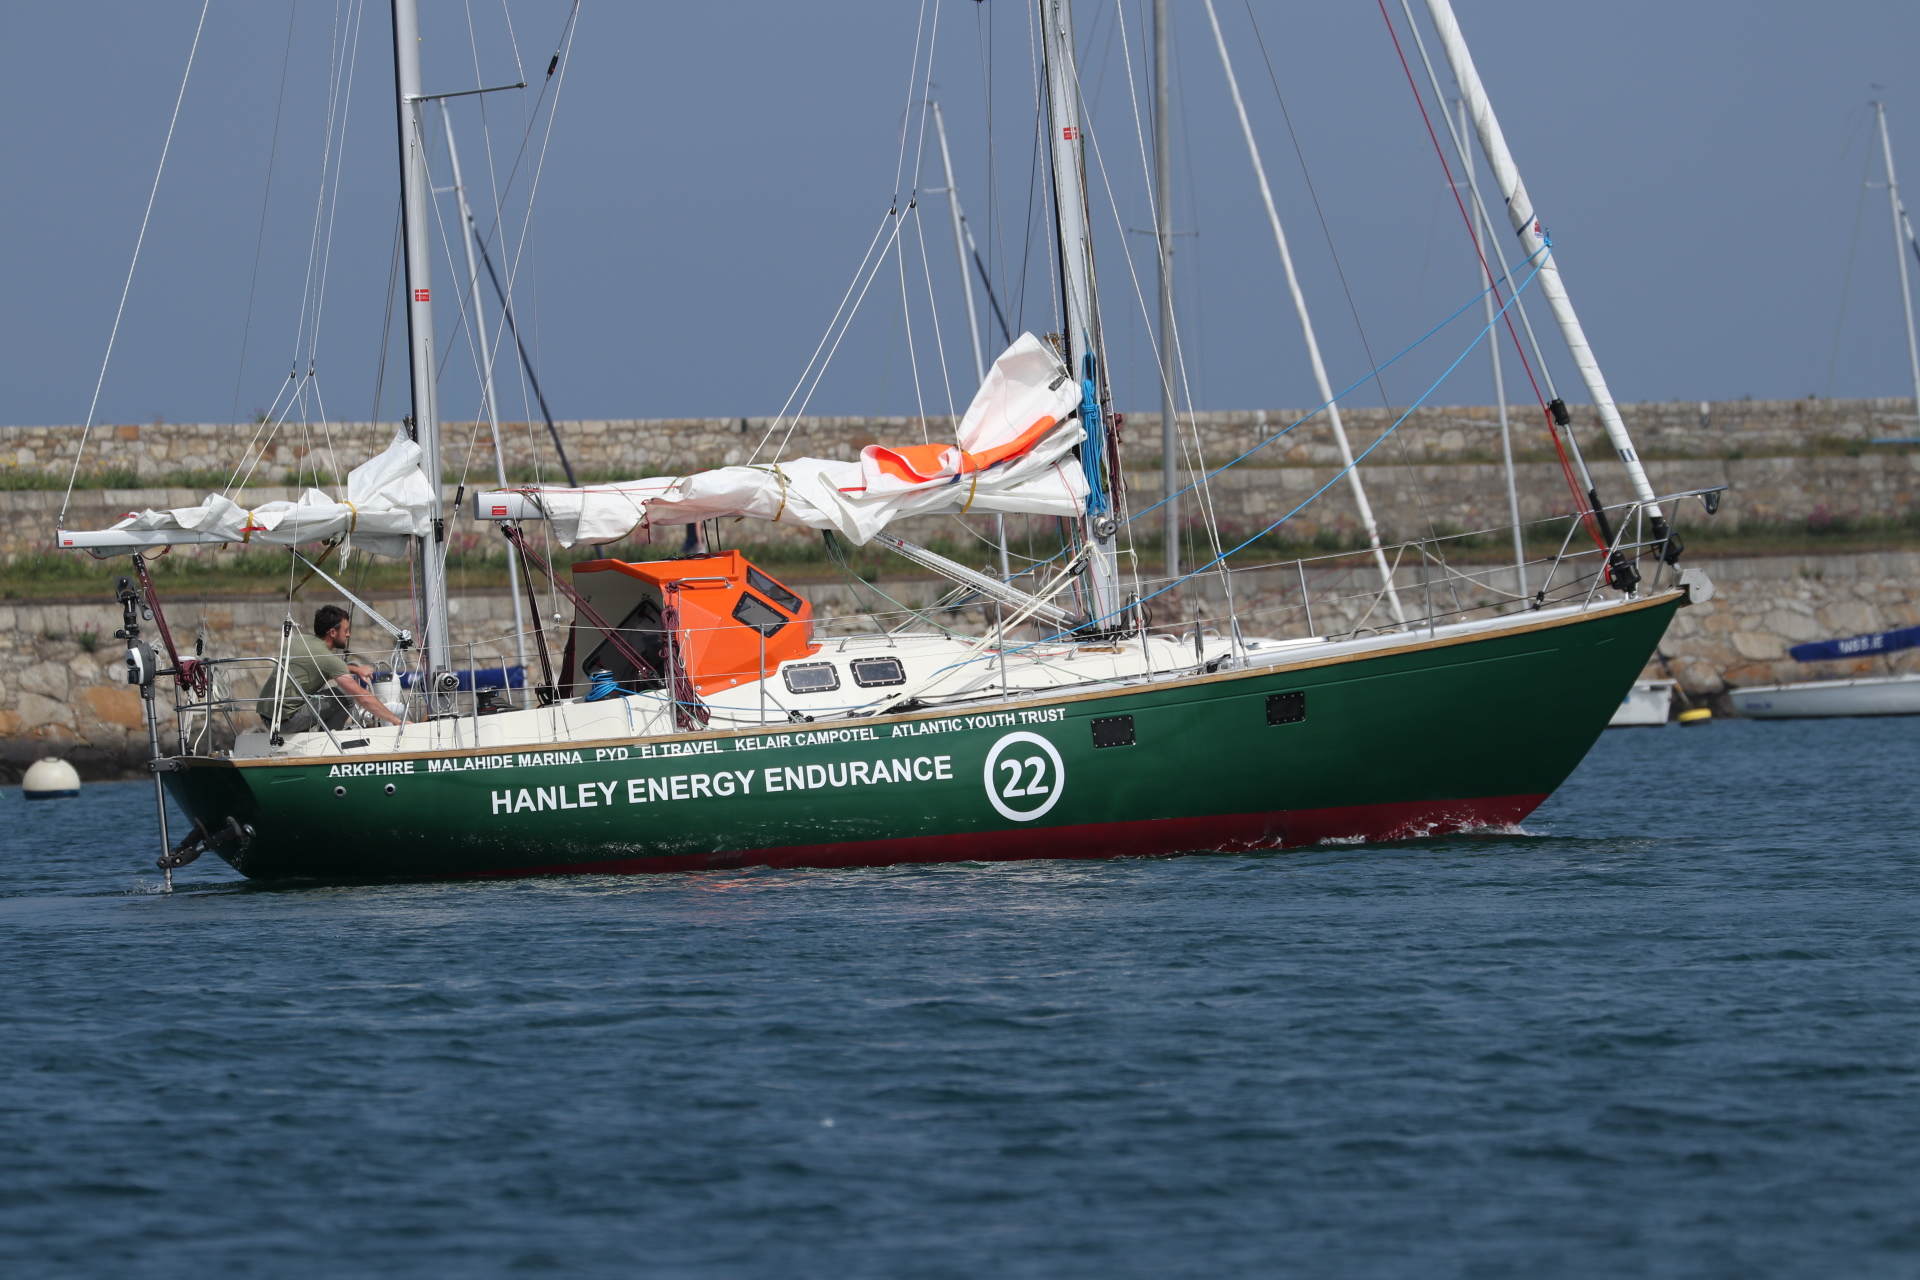 Irish solo sailor, Gregor McGuckin, preparing for Golden Globe race with Hanley Energy as headline sponsor